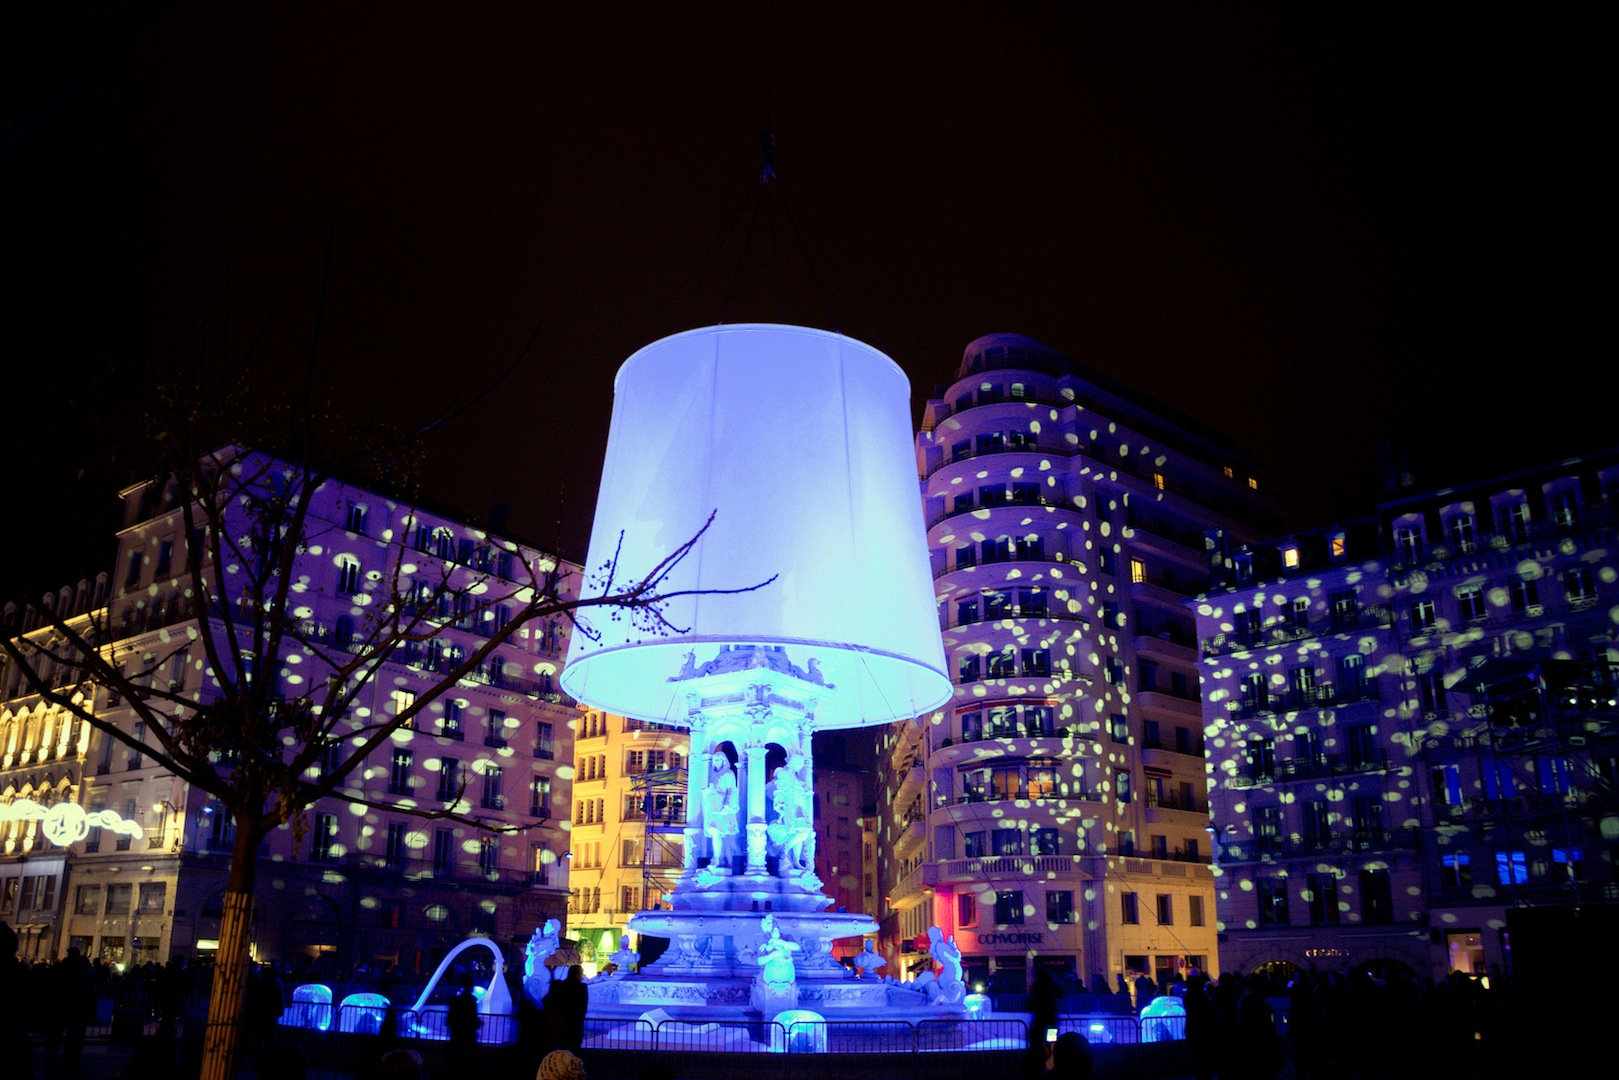 https://www.uniquetoursfactory.com/city-tours-magazine/wp-content/uploads/2016/11/fete-lumieres-lyon-unique-tours-factory-blog.jpg